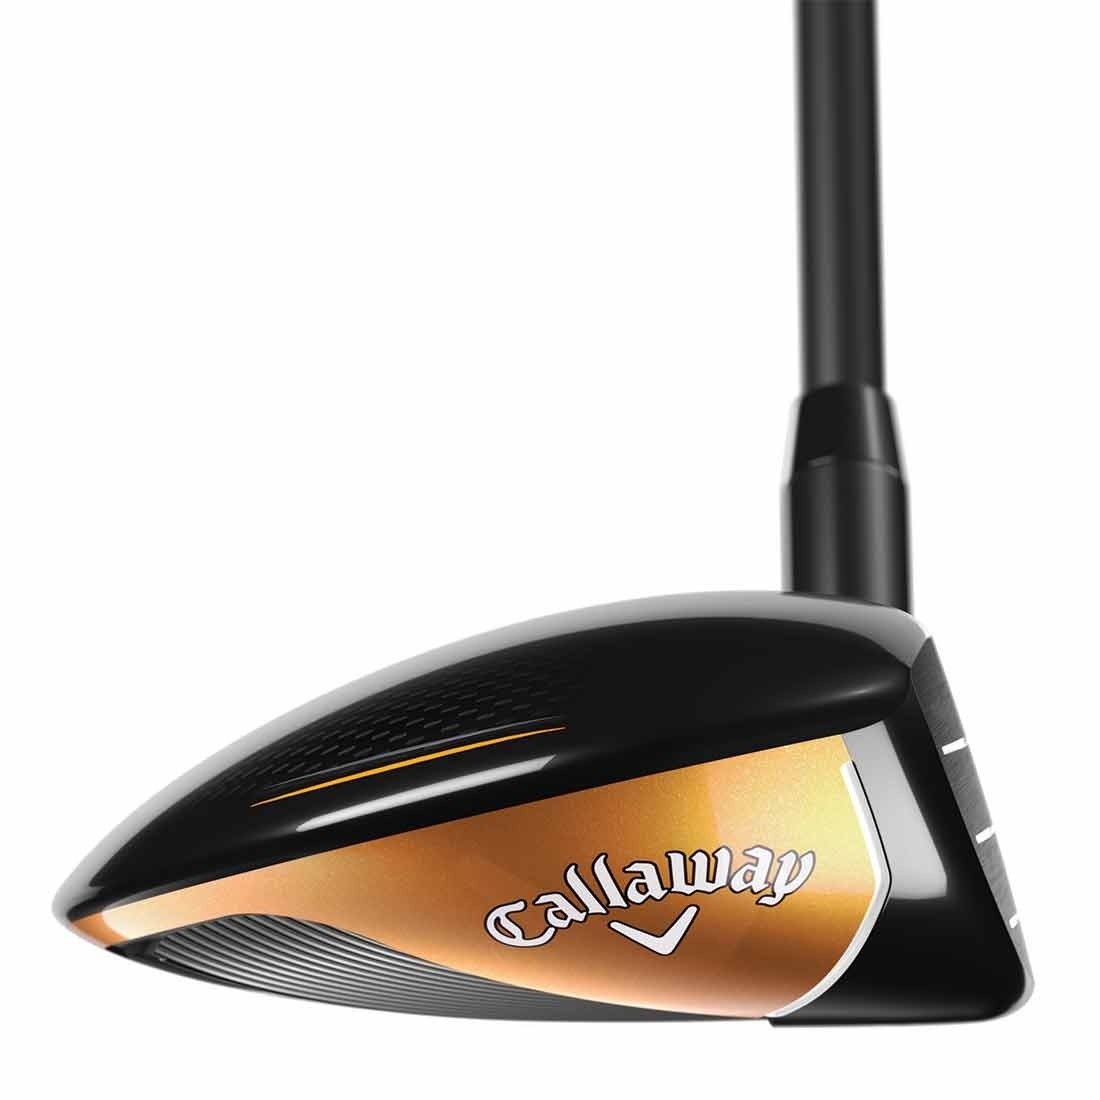 Callaway Mavrik Fairway Woods w/ Riptide 60 Shaft